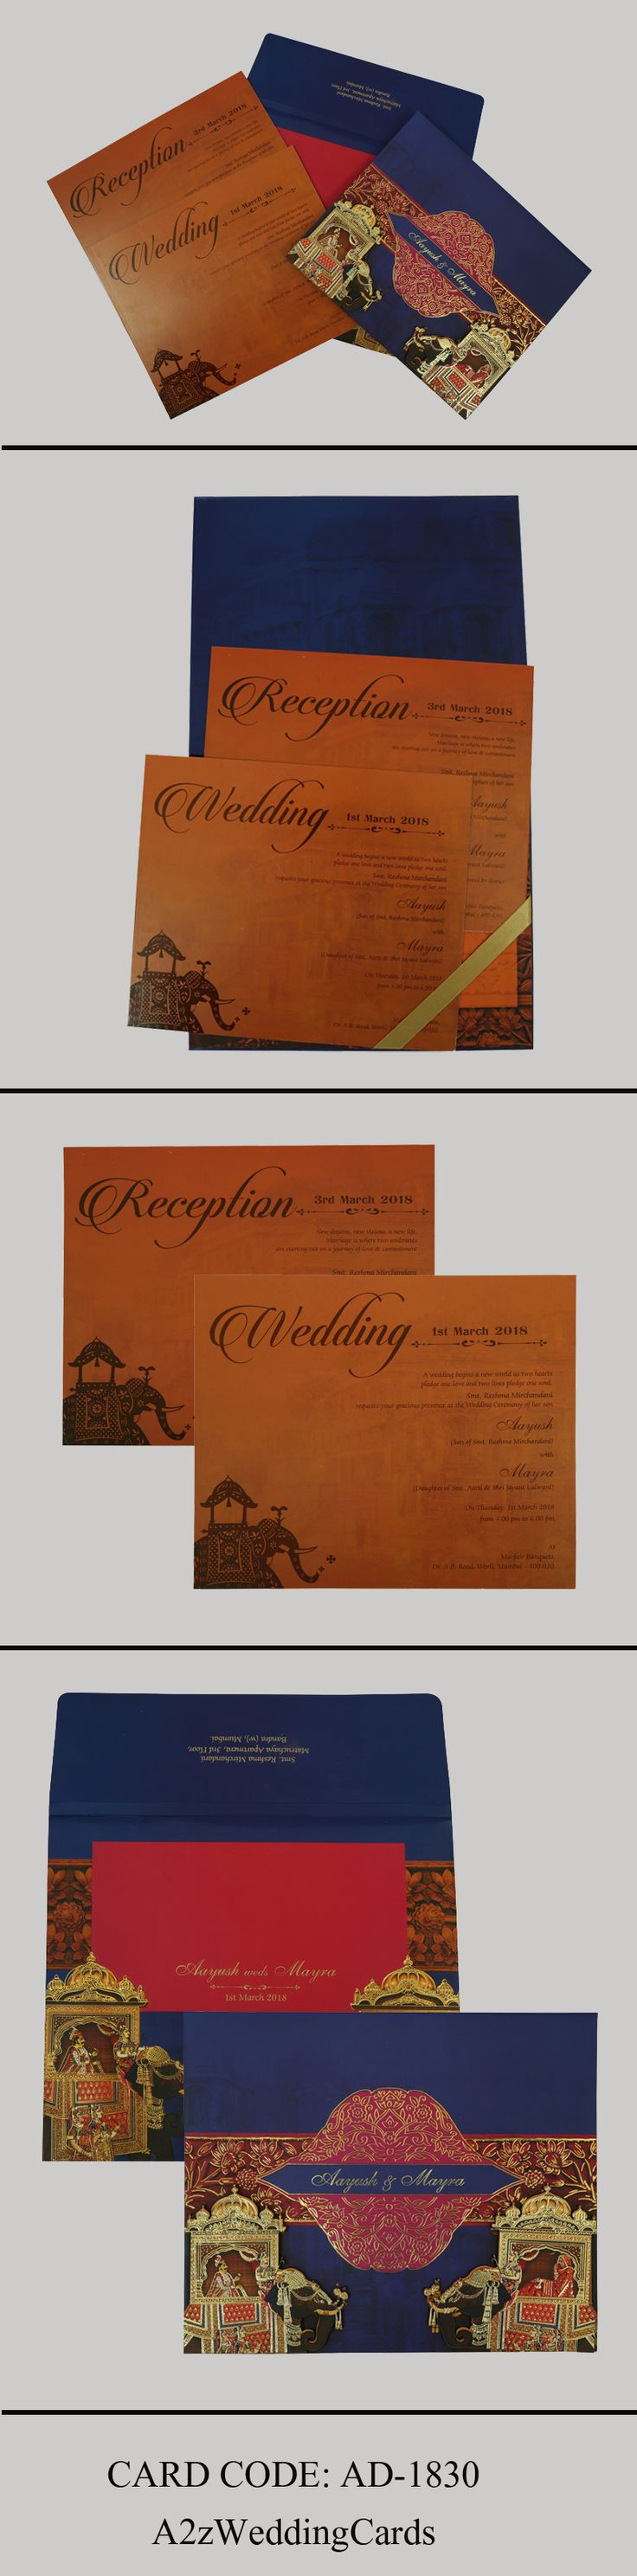 indian wedding cards wordings in hindi%0A  Blue colored  HinduWeddingInvites for your  Royal  bluewedding    HinduCards  IndianWeddingCards